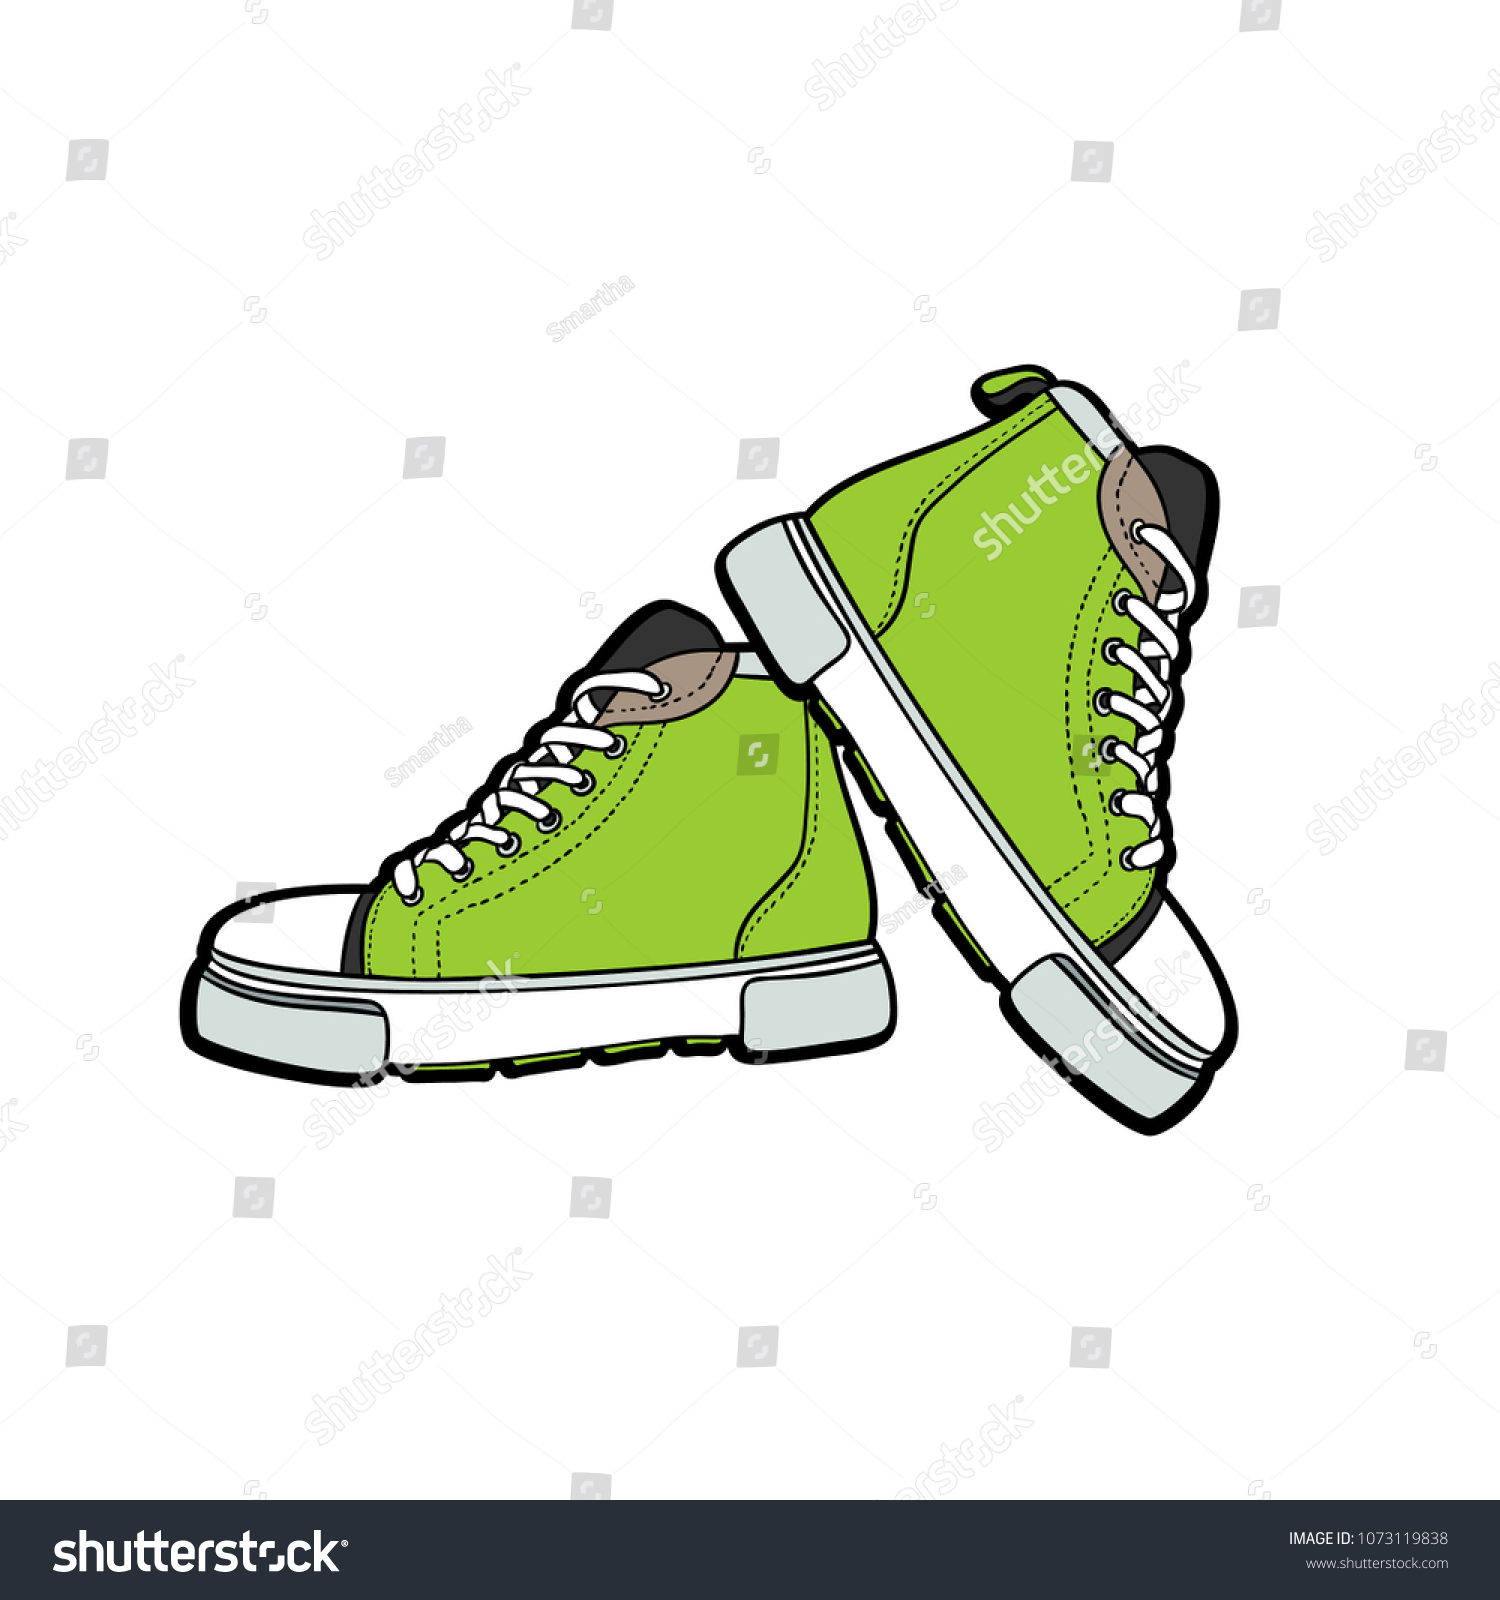 9b0e8b7956e7fb Sneakers converse shoes pair isolated. Hand drawn vector illustration of  green shoes. Sport boots hand drawn for logo